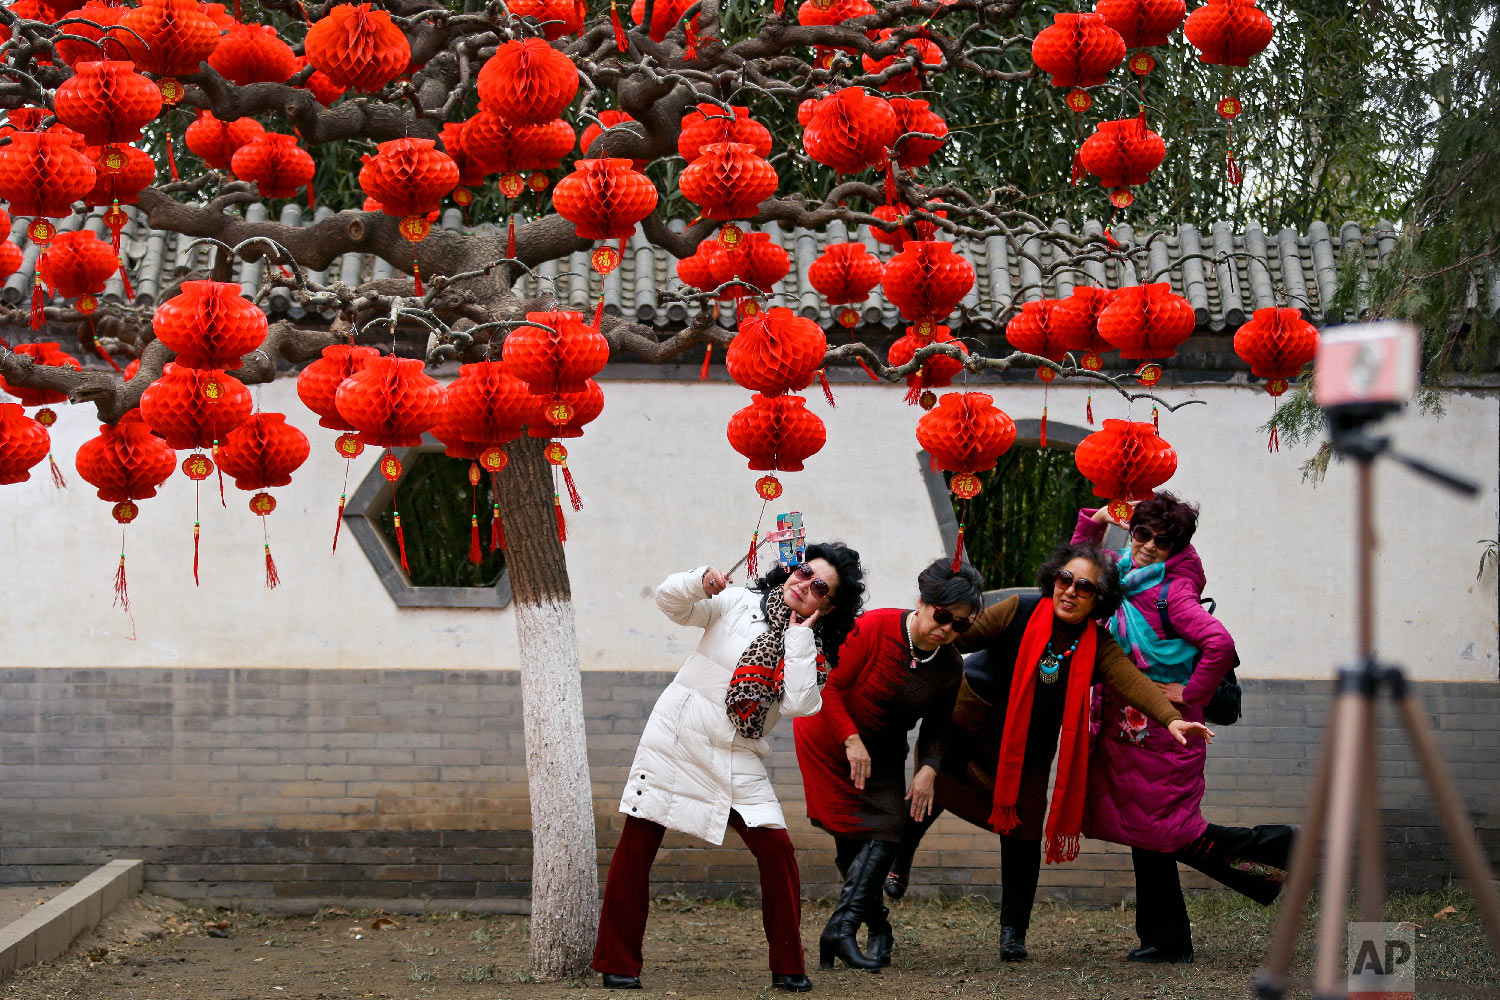 Women take a selfie near a tree decorated with red lanterns ahead of the Lunar New Year at Ditan Park in Beijing, Wednesday, Jan. 30, 2019. (AP Photo/Andy Wong)